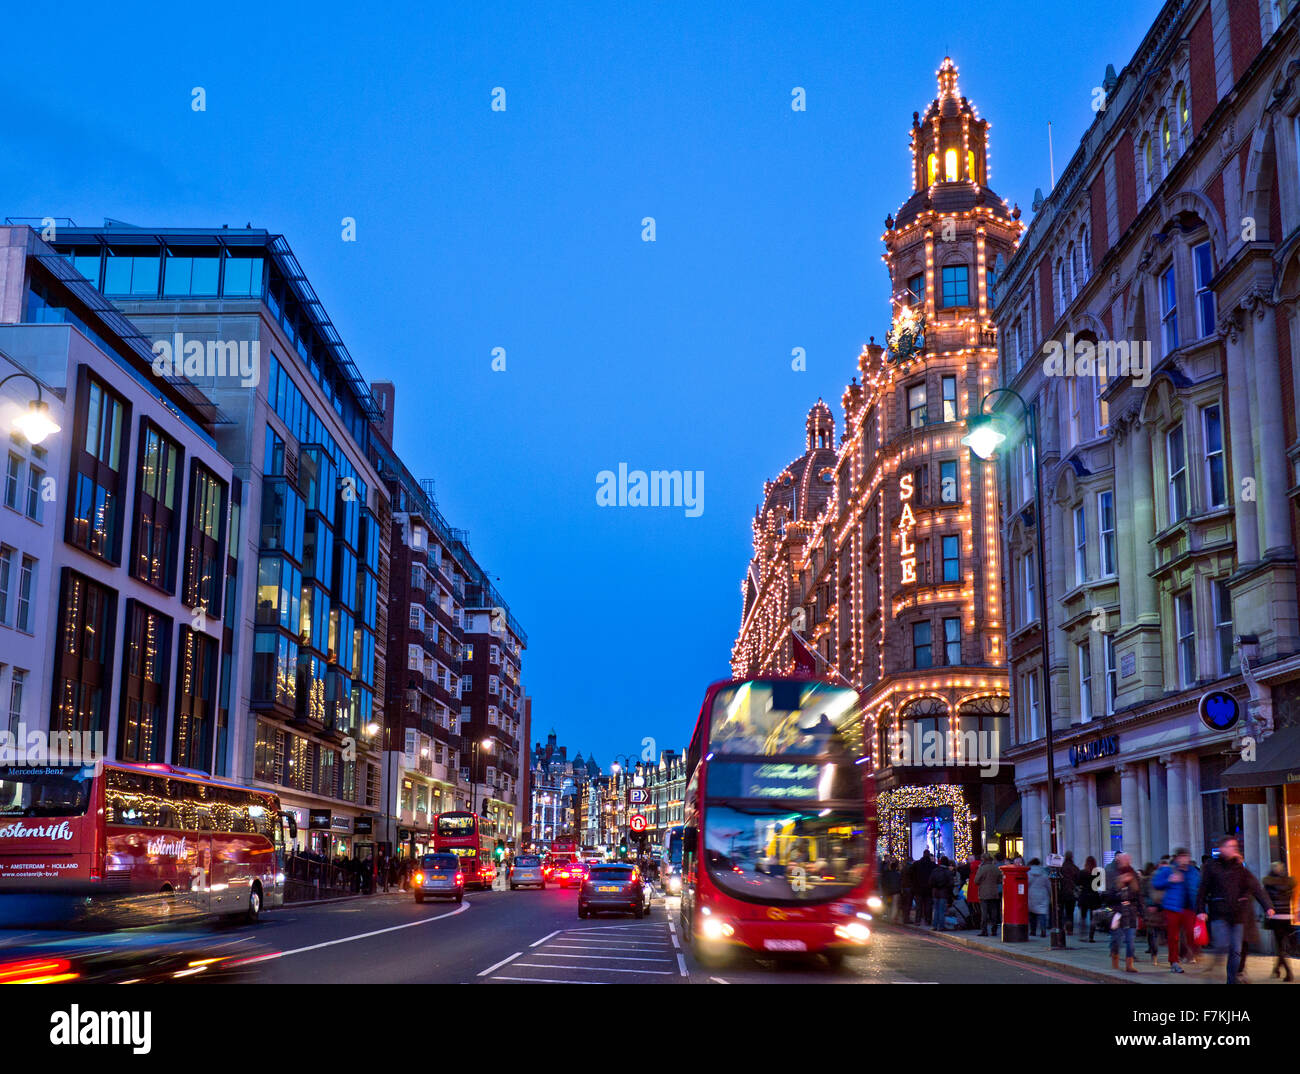 Brompton Road shops including Harrods store at dusk with lit 'Sale' sign shoppers red buses and taxis Knightsbridge - Stock Image